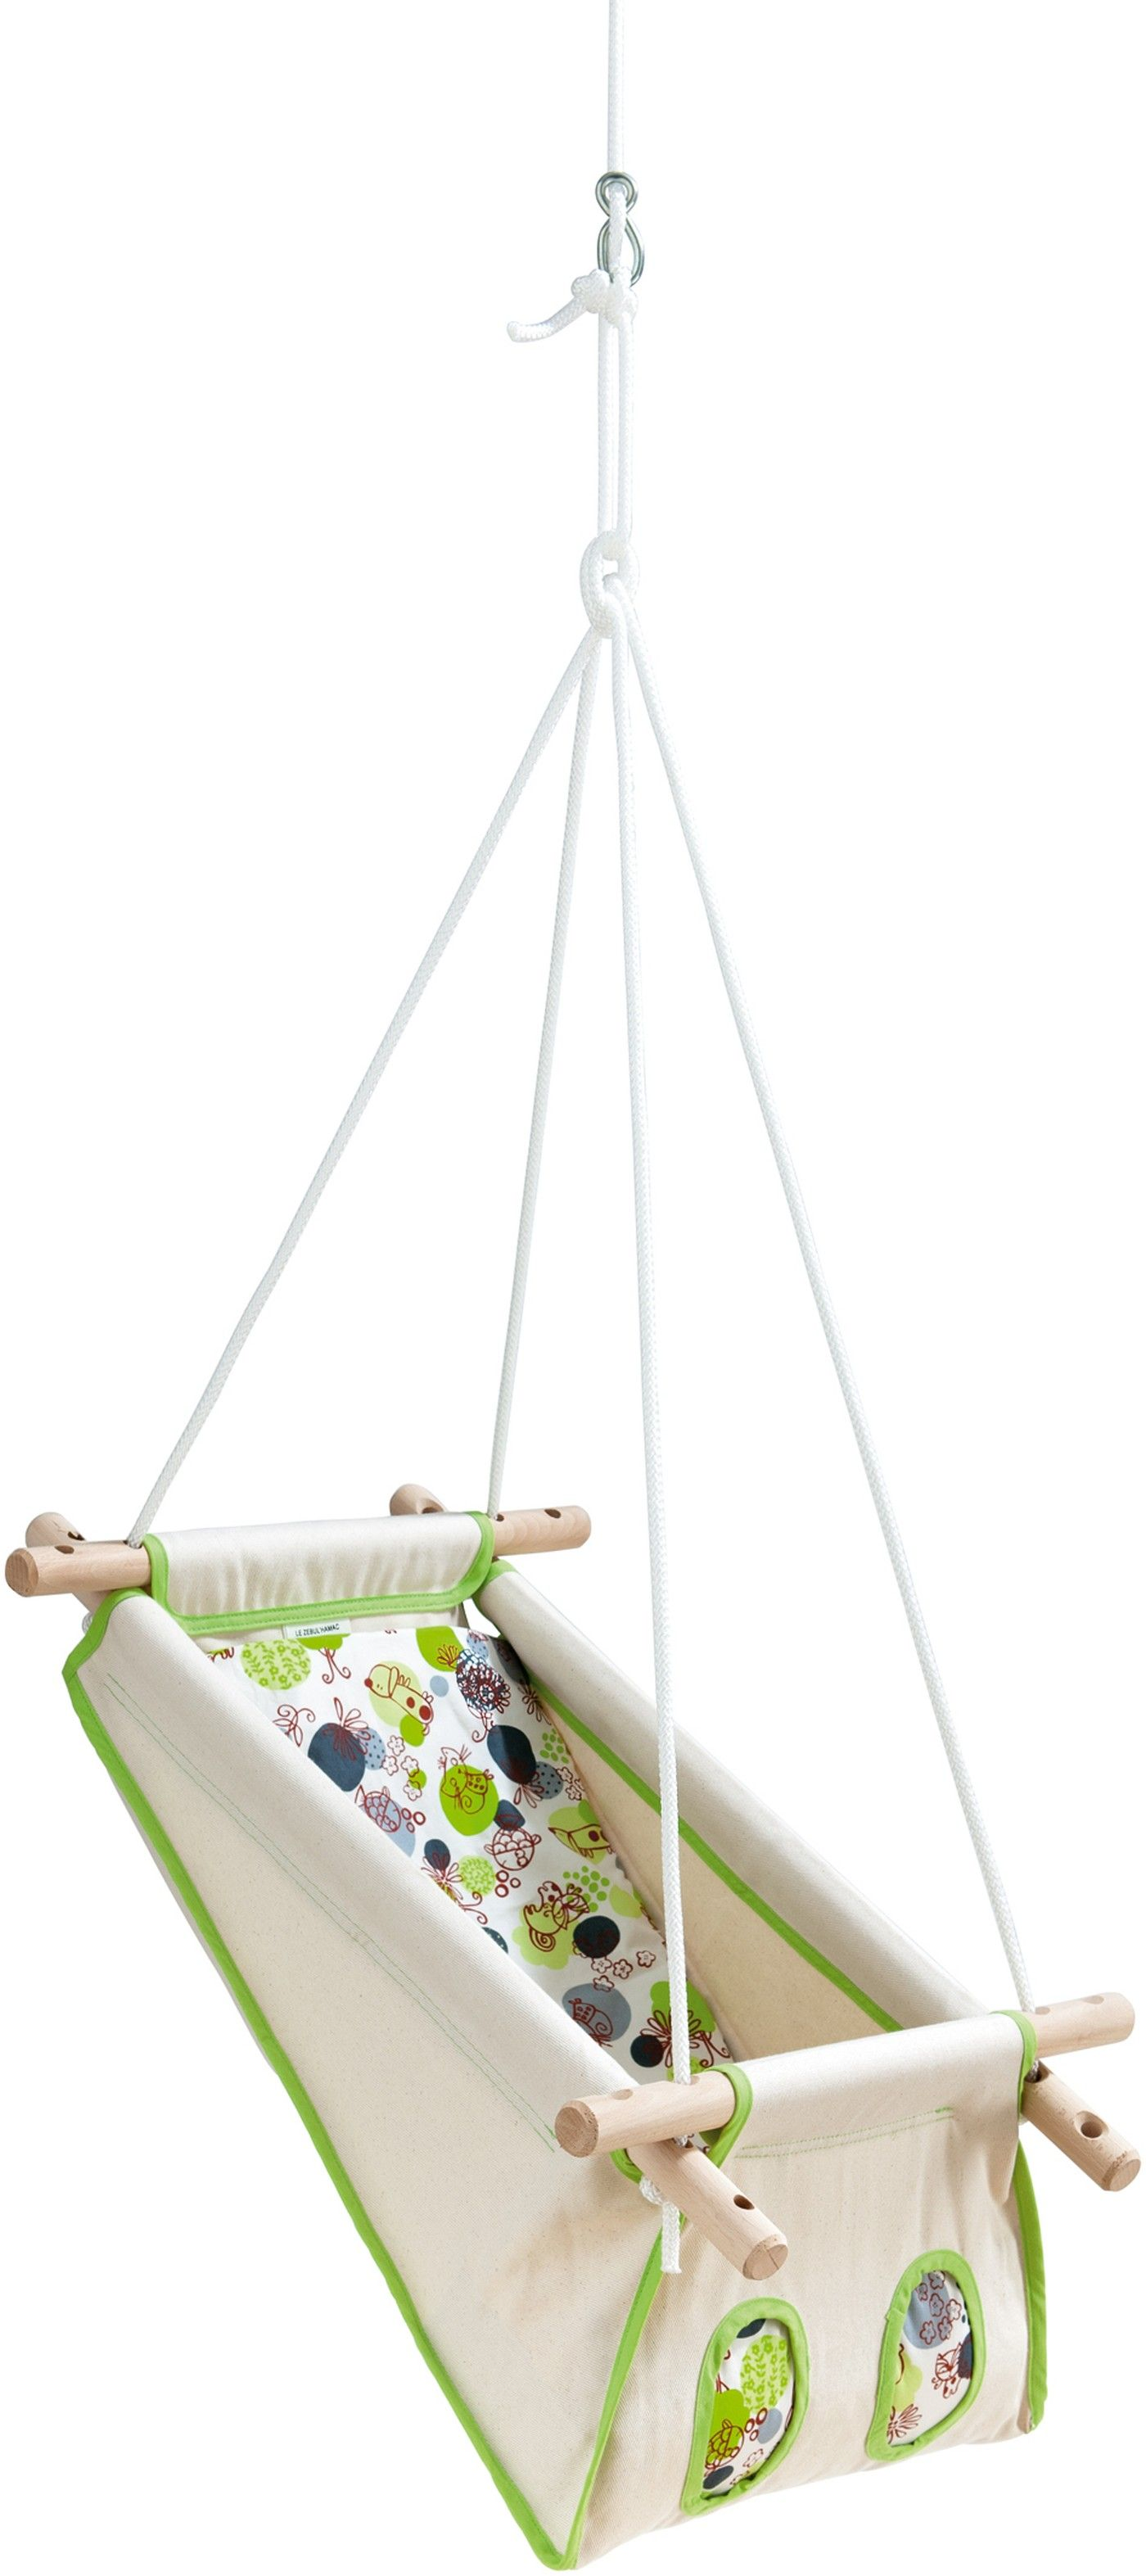 baby roomsafer popular outdoor swing with papasan bowl chairs cushions hammock glamorous kids captivating chair ikea cushion double design decorating awesome furniture frame